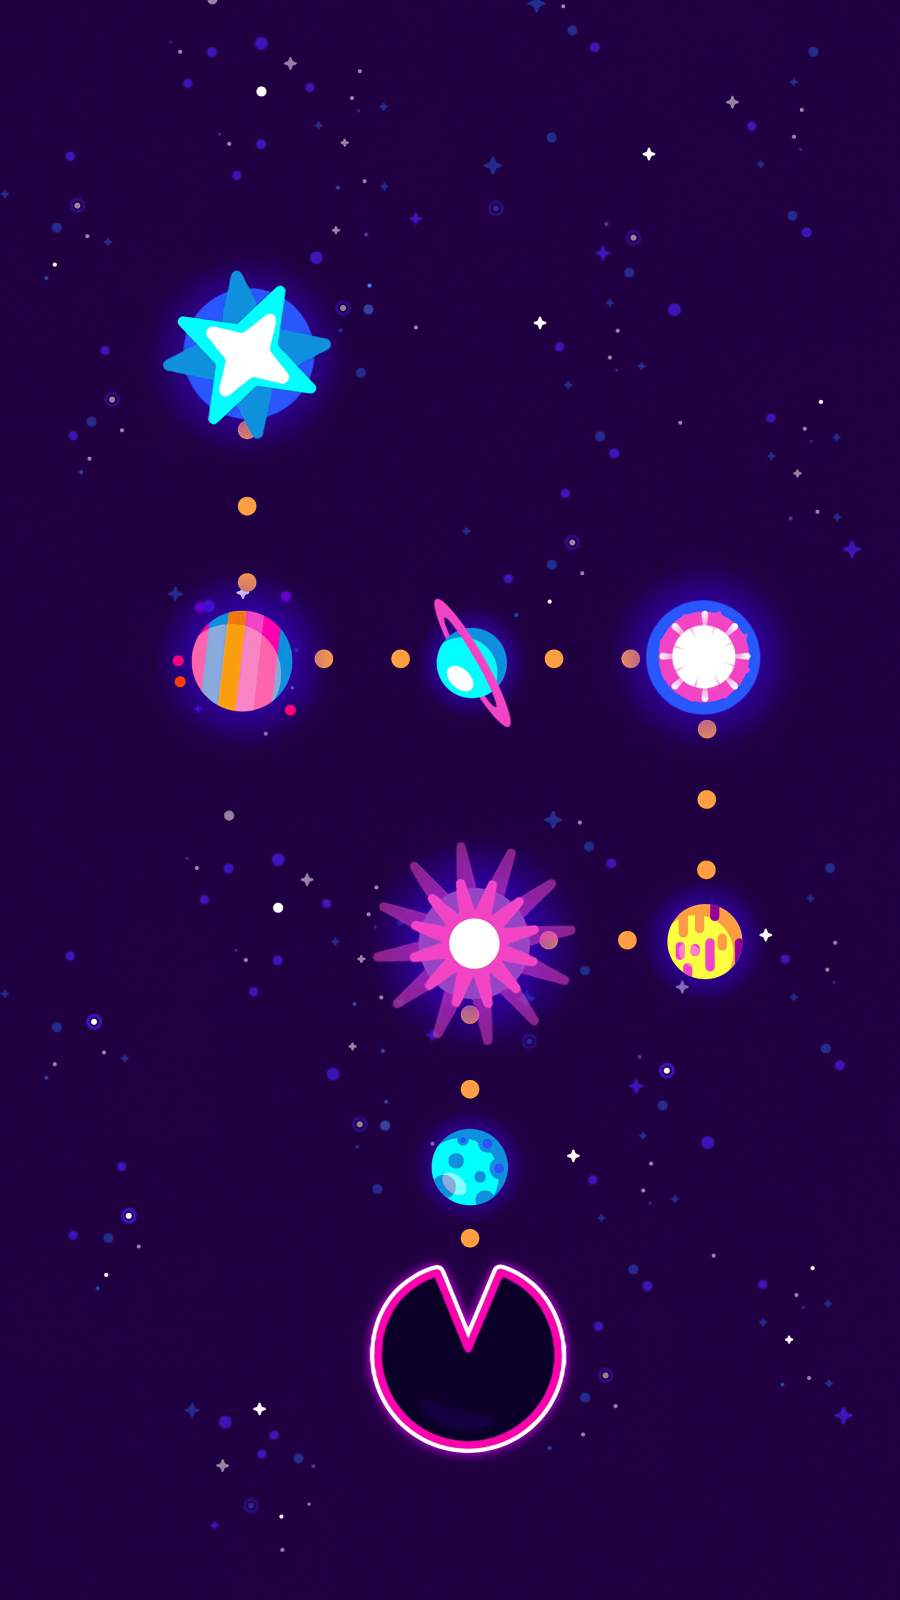 Pacman Eating Planets iPhone Wallpaper